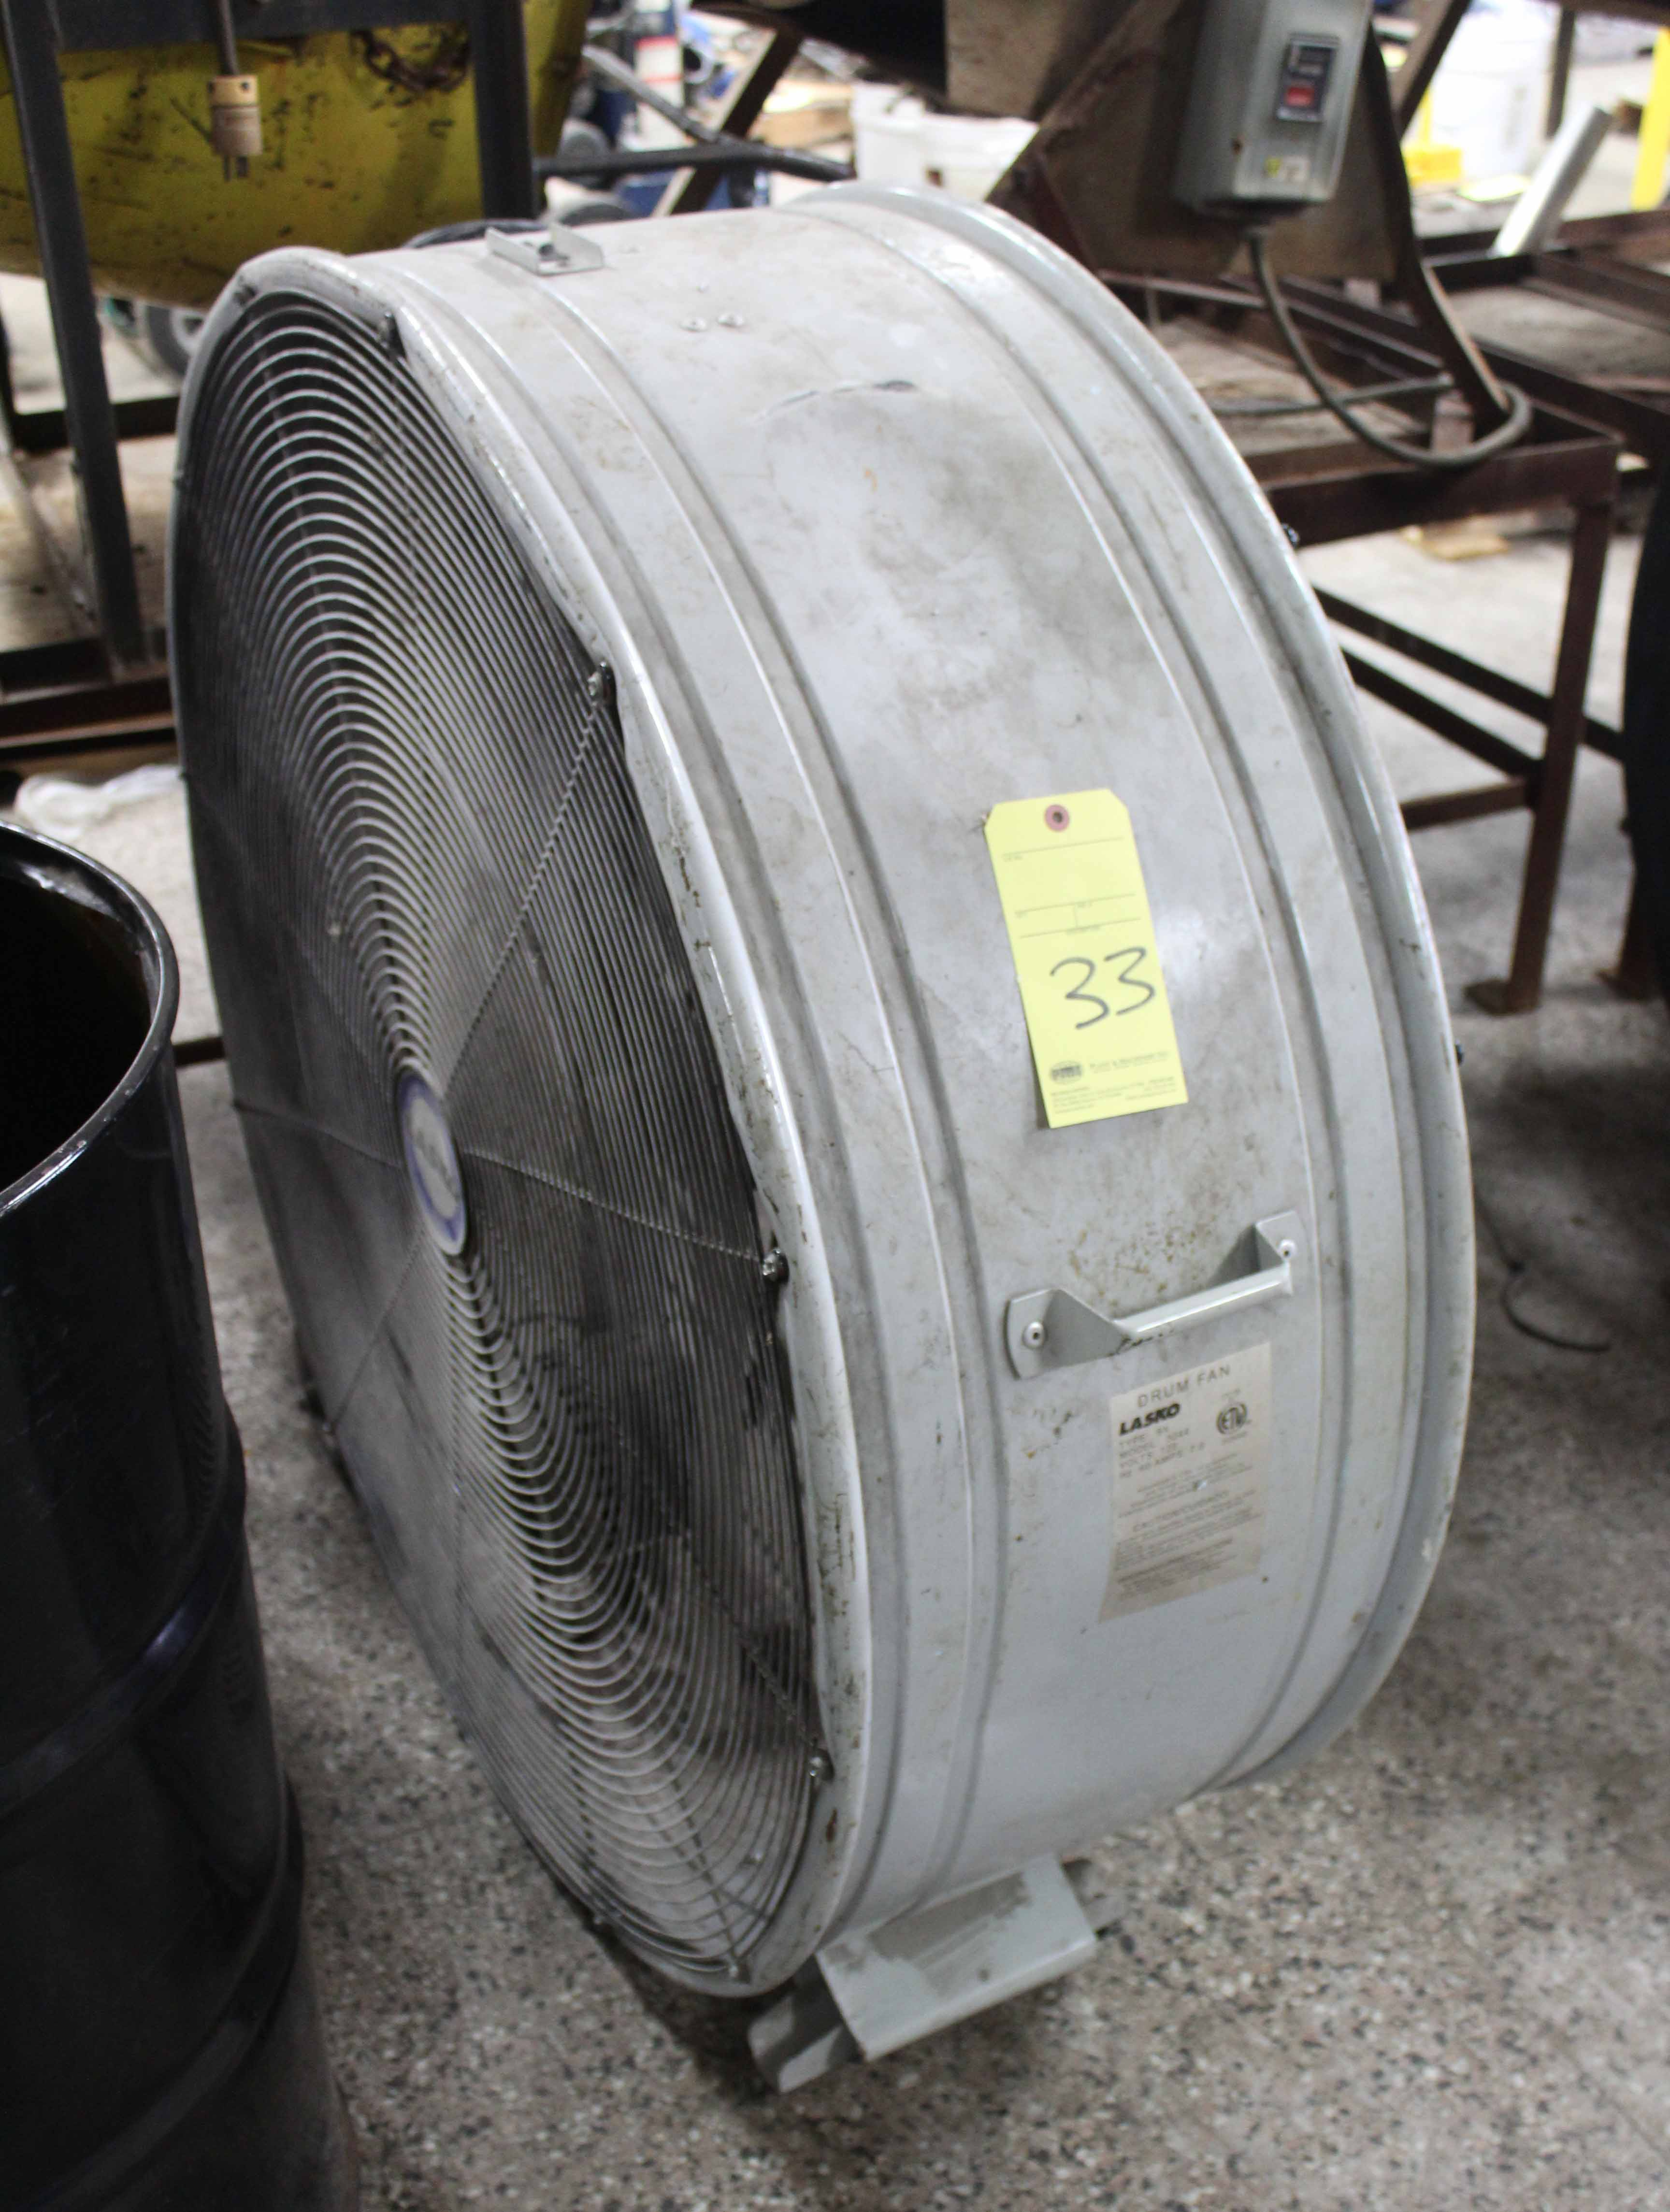 Lot 33 - ROLLER SHOP FAN